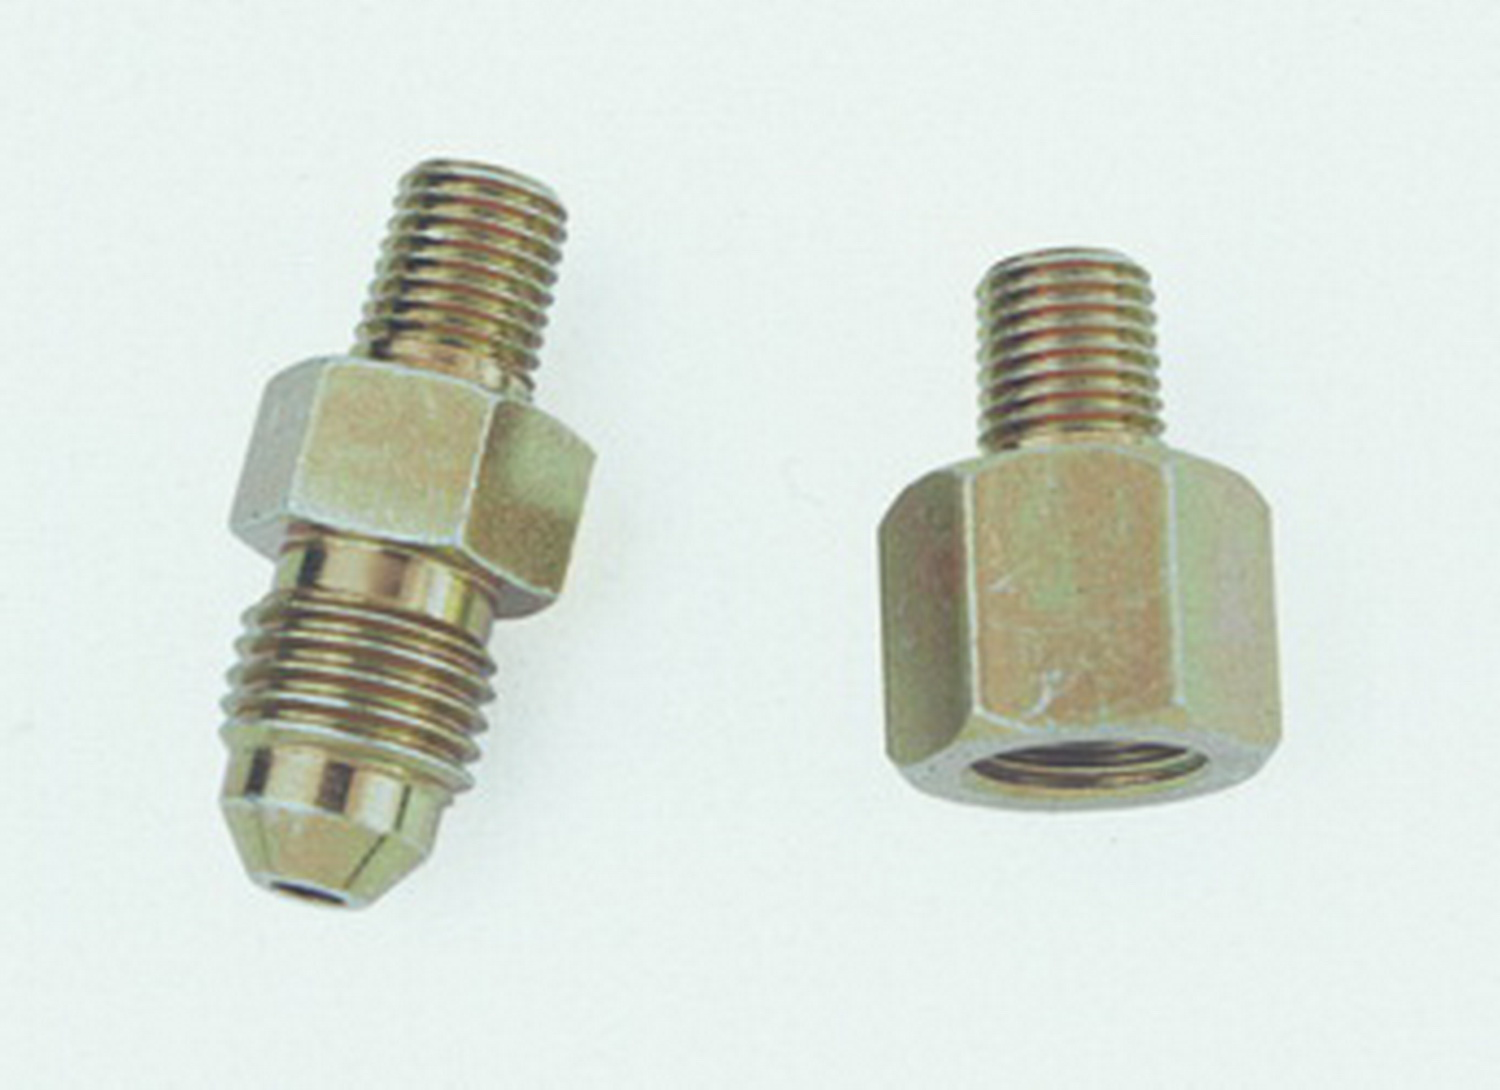 Eaton Adapter Fitting 1//8 NPT to 4AN Flare Gauge Fitting